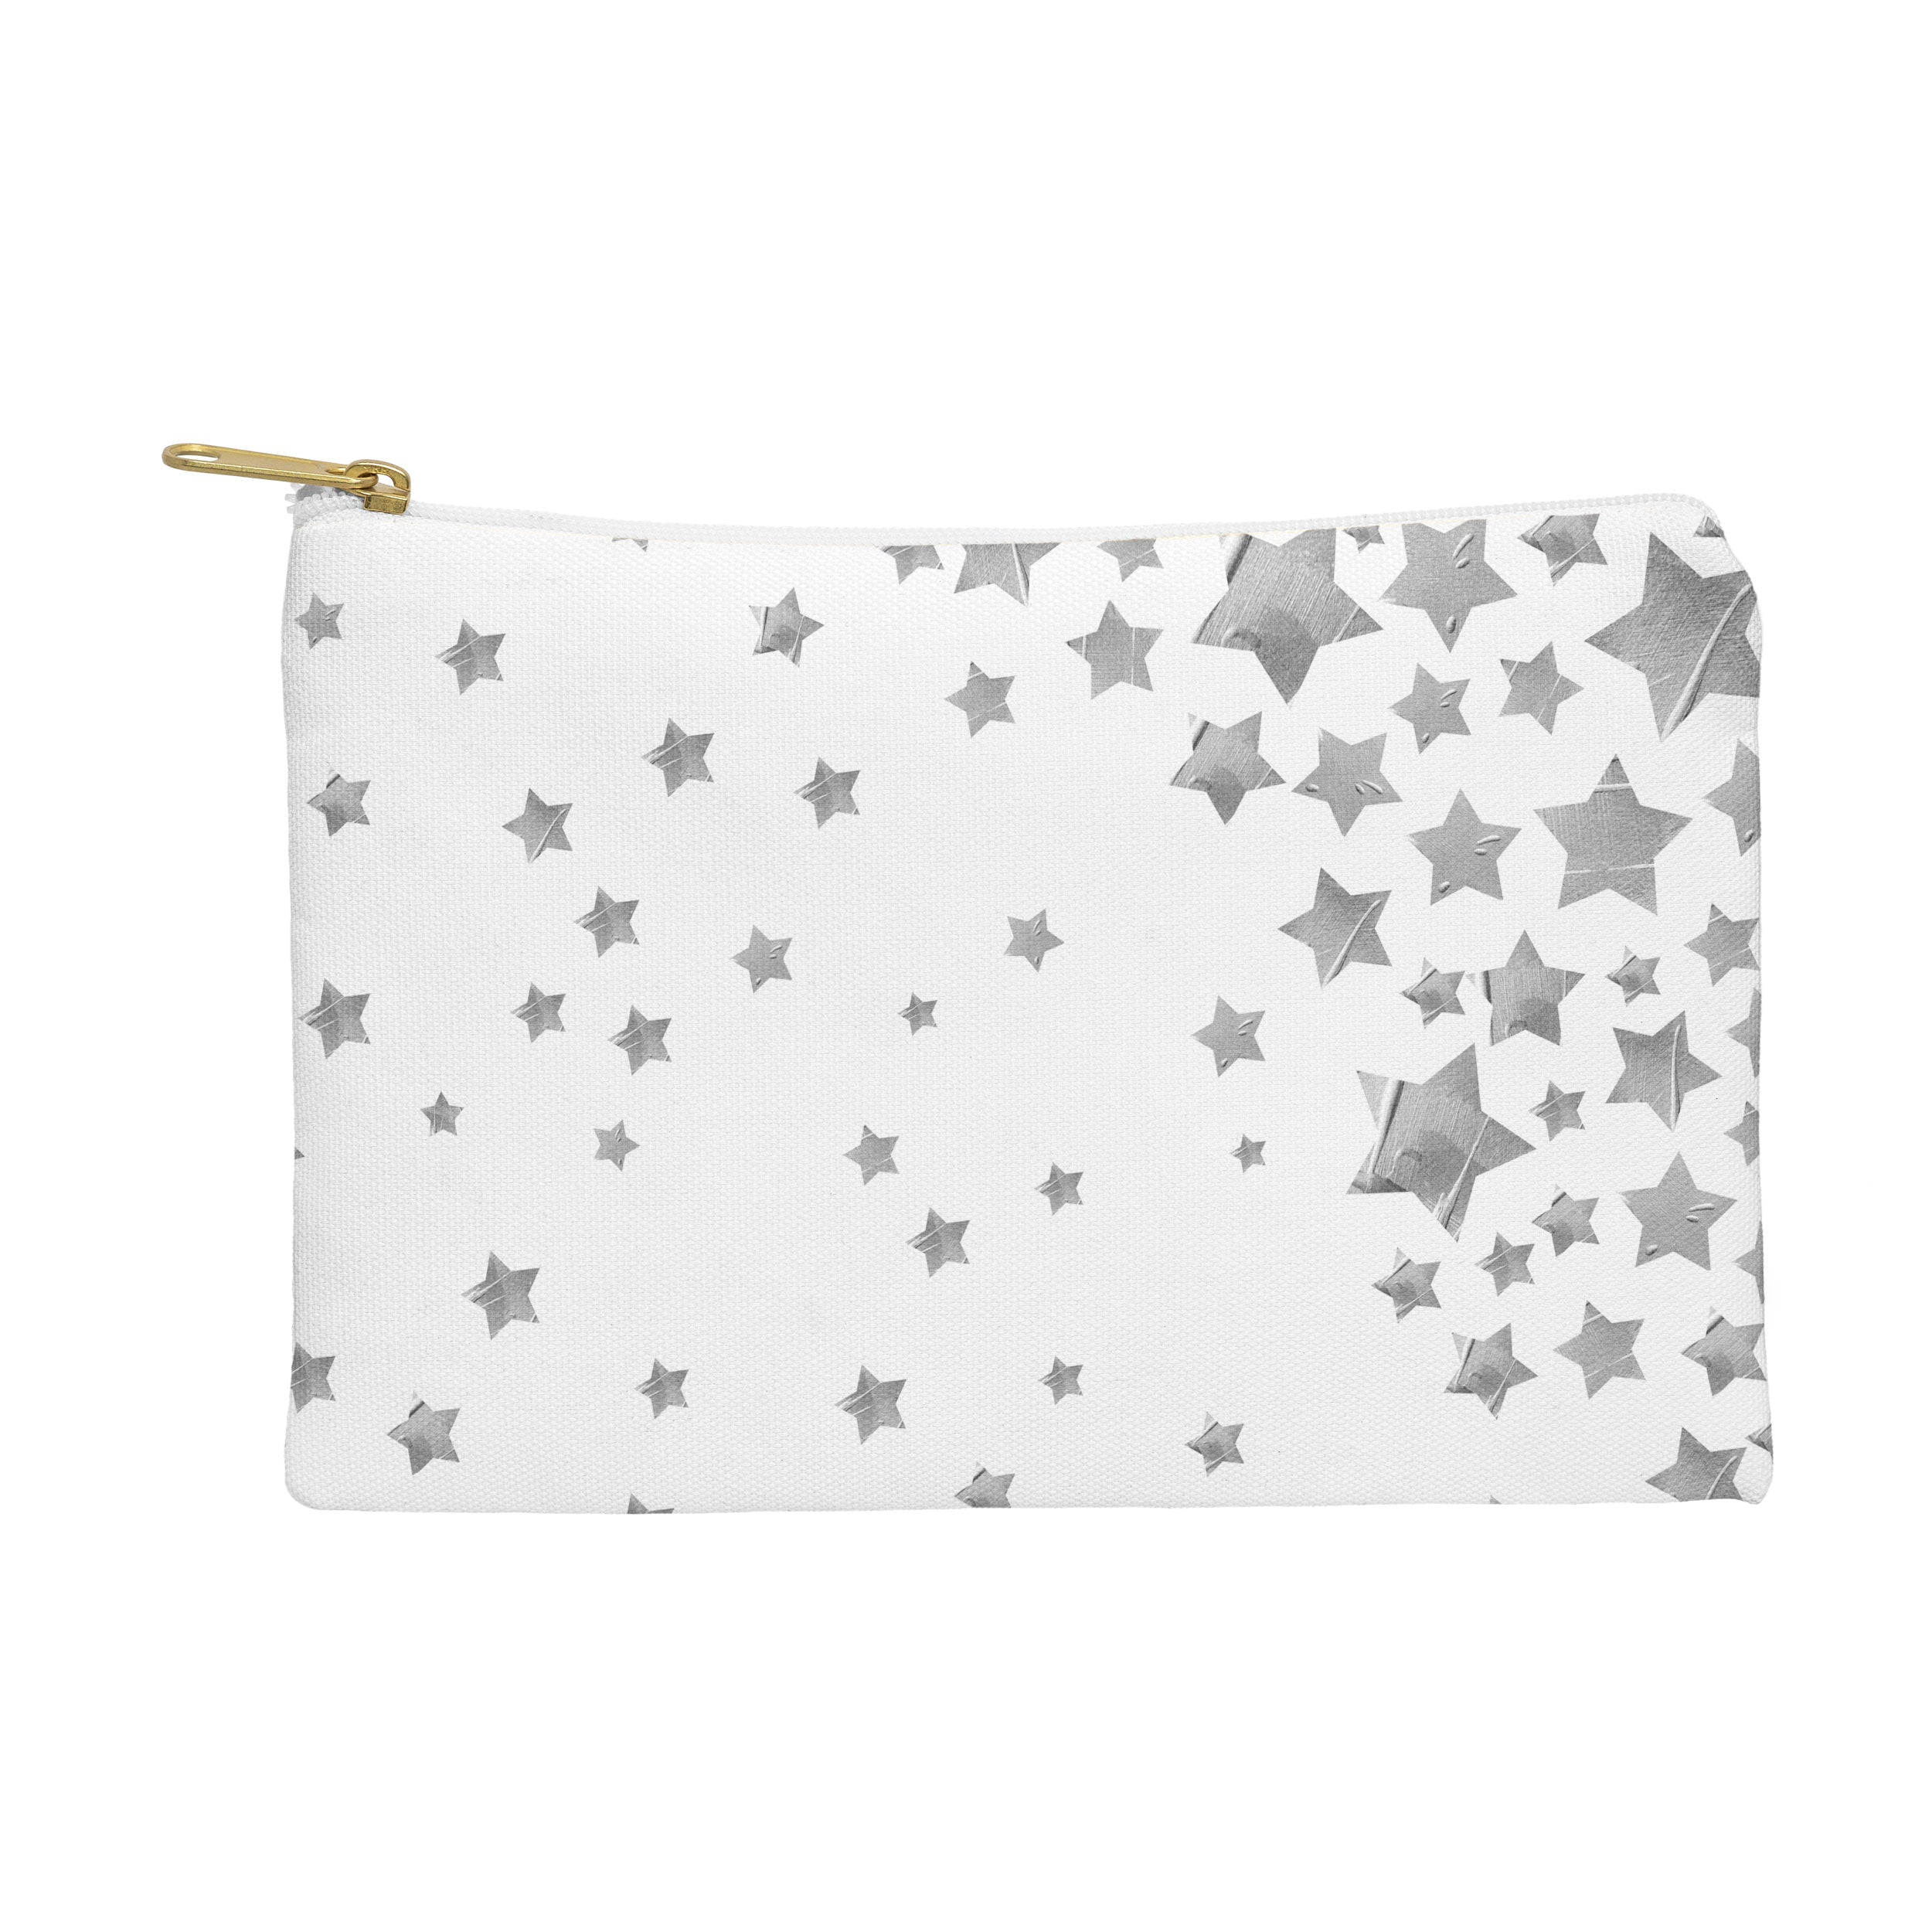 Lisa Argyropoulos Starry Magic Silvery White Pouch